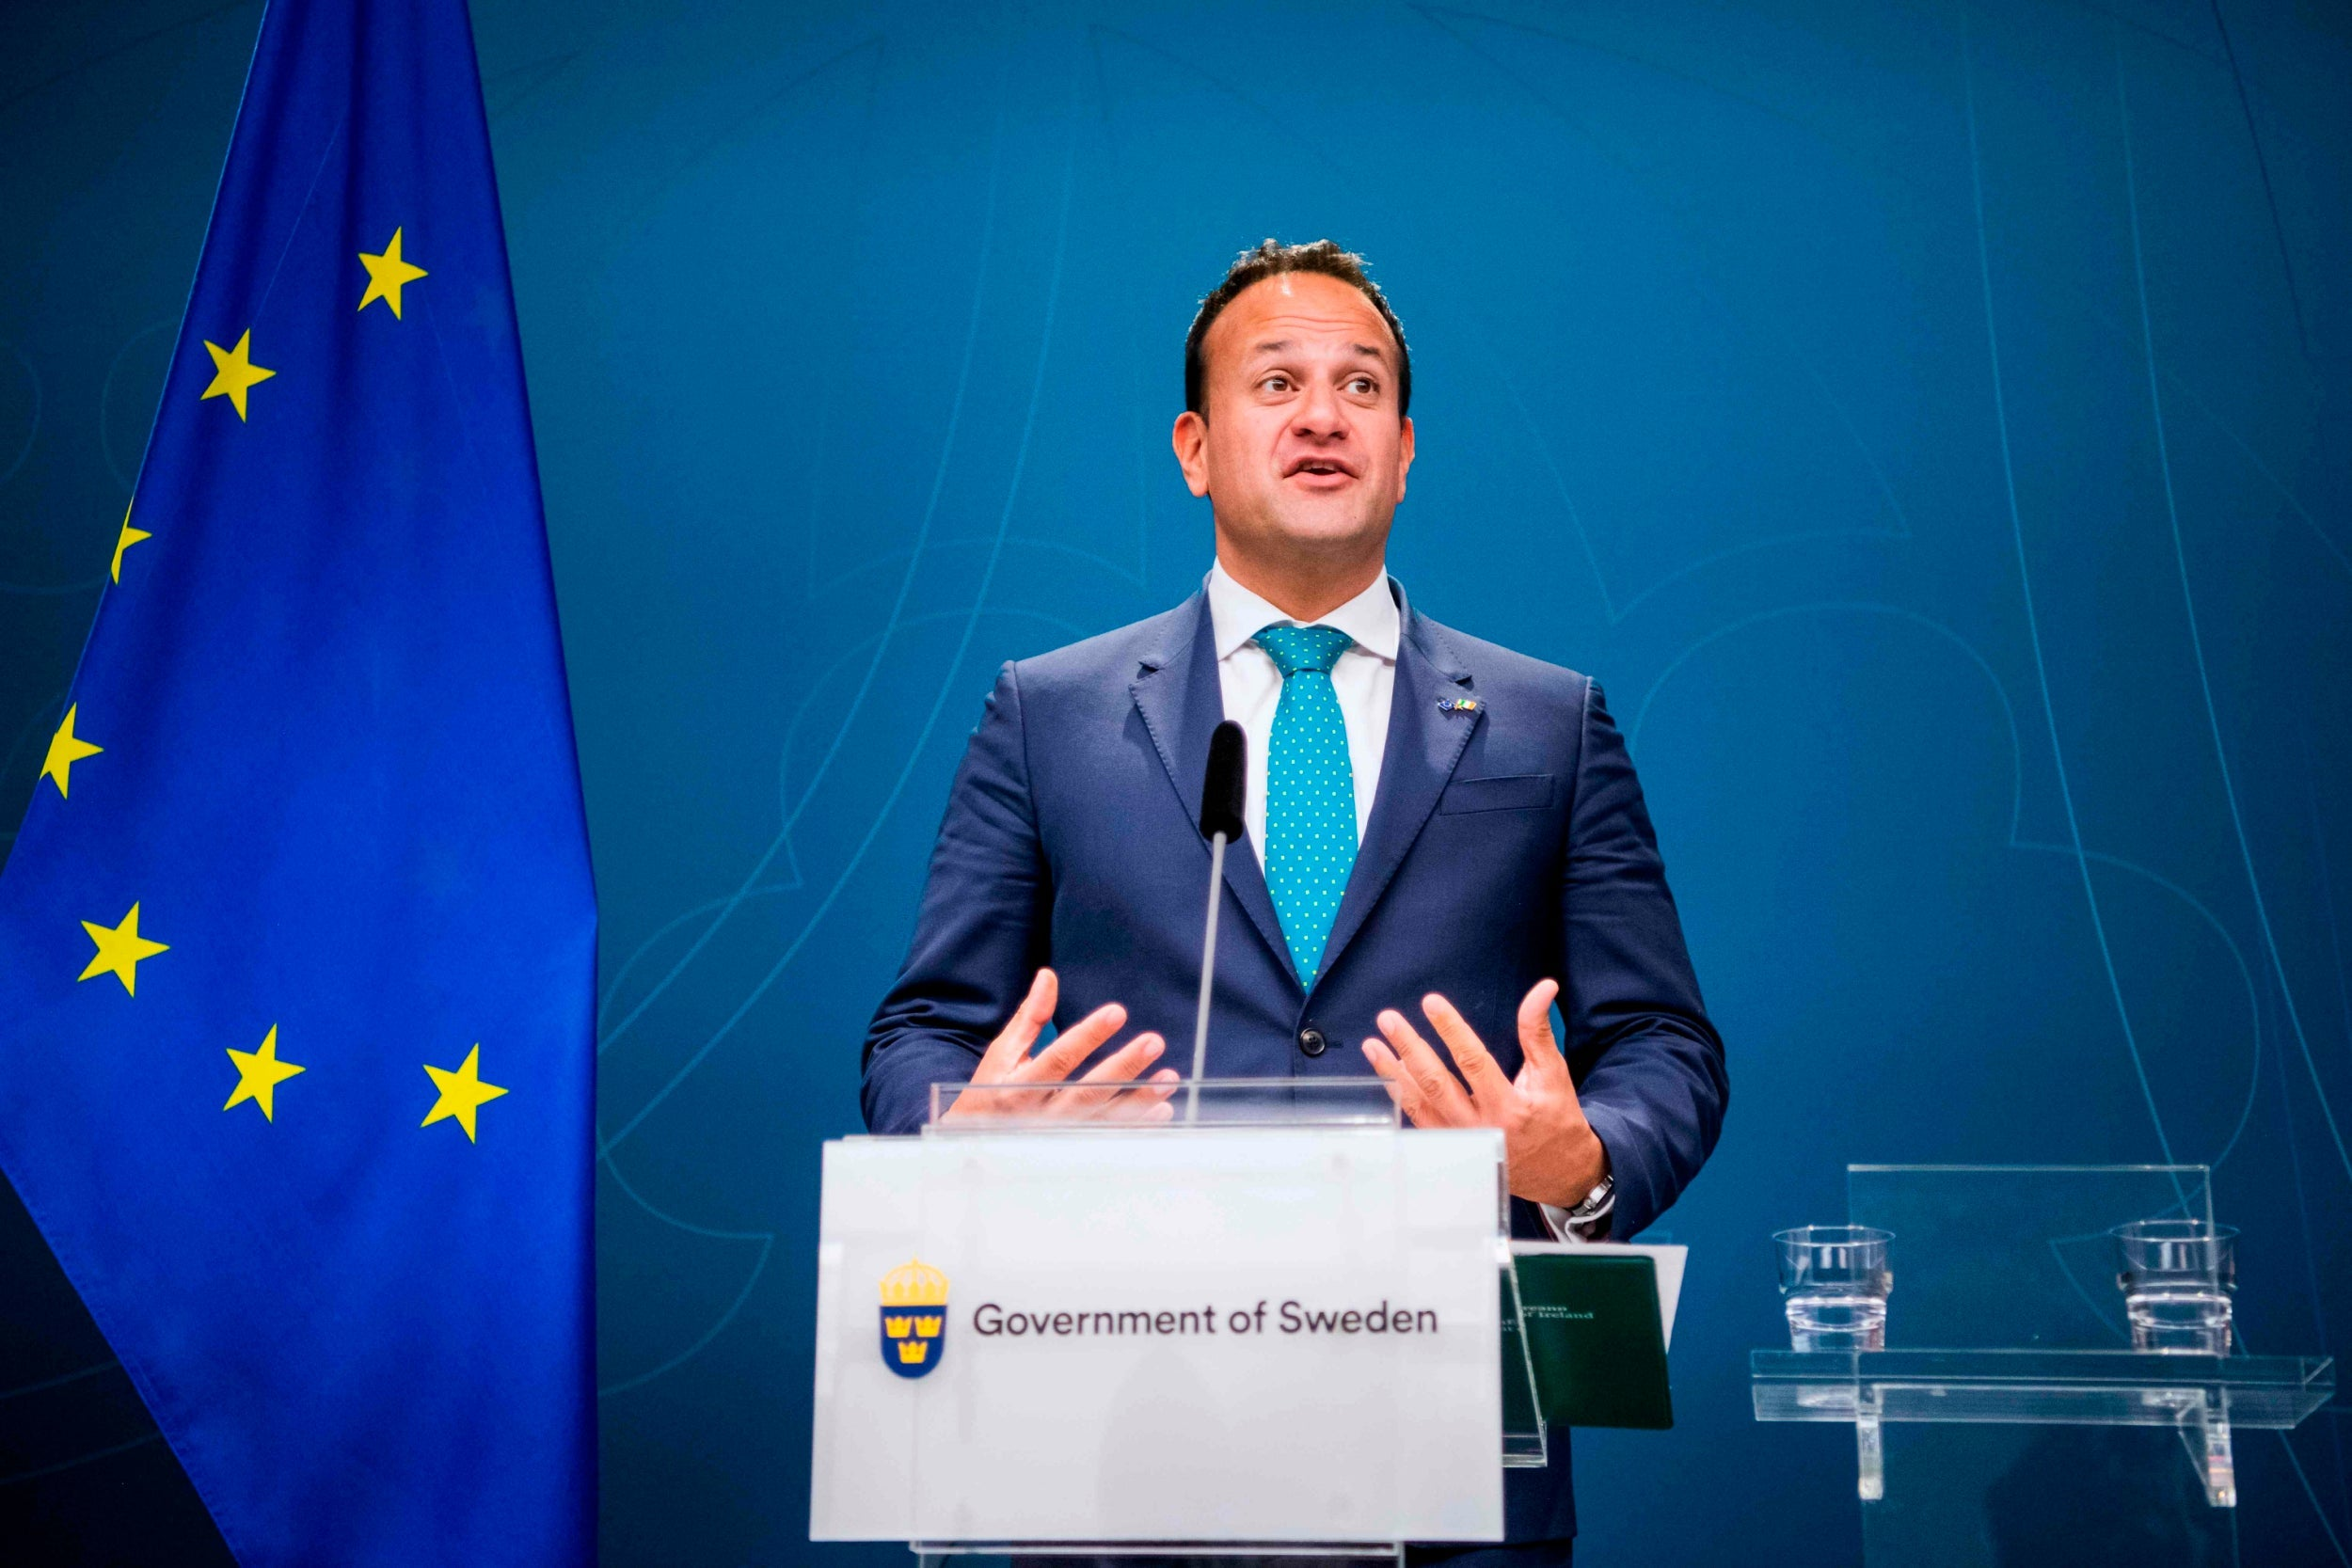 Leo Varadkar suggests Boris Johnson ready to sign up to EU standards to secure post-Brexit trade deal next year